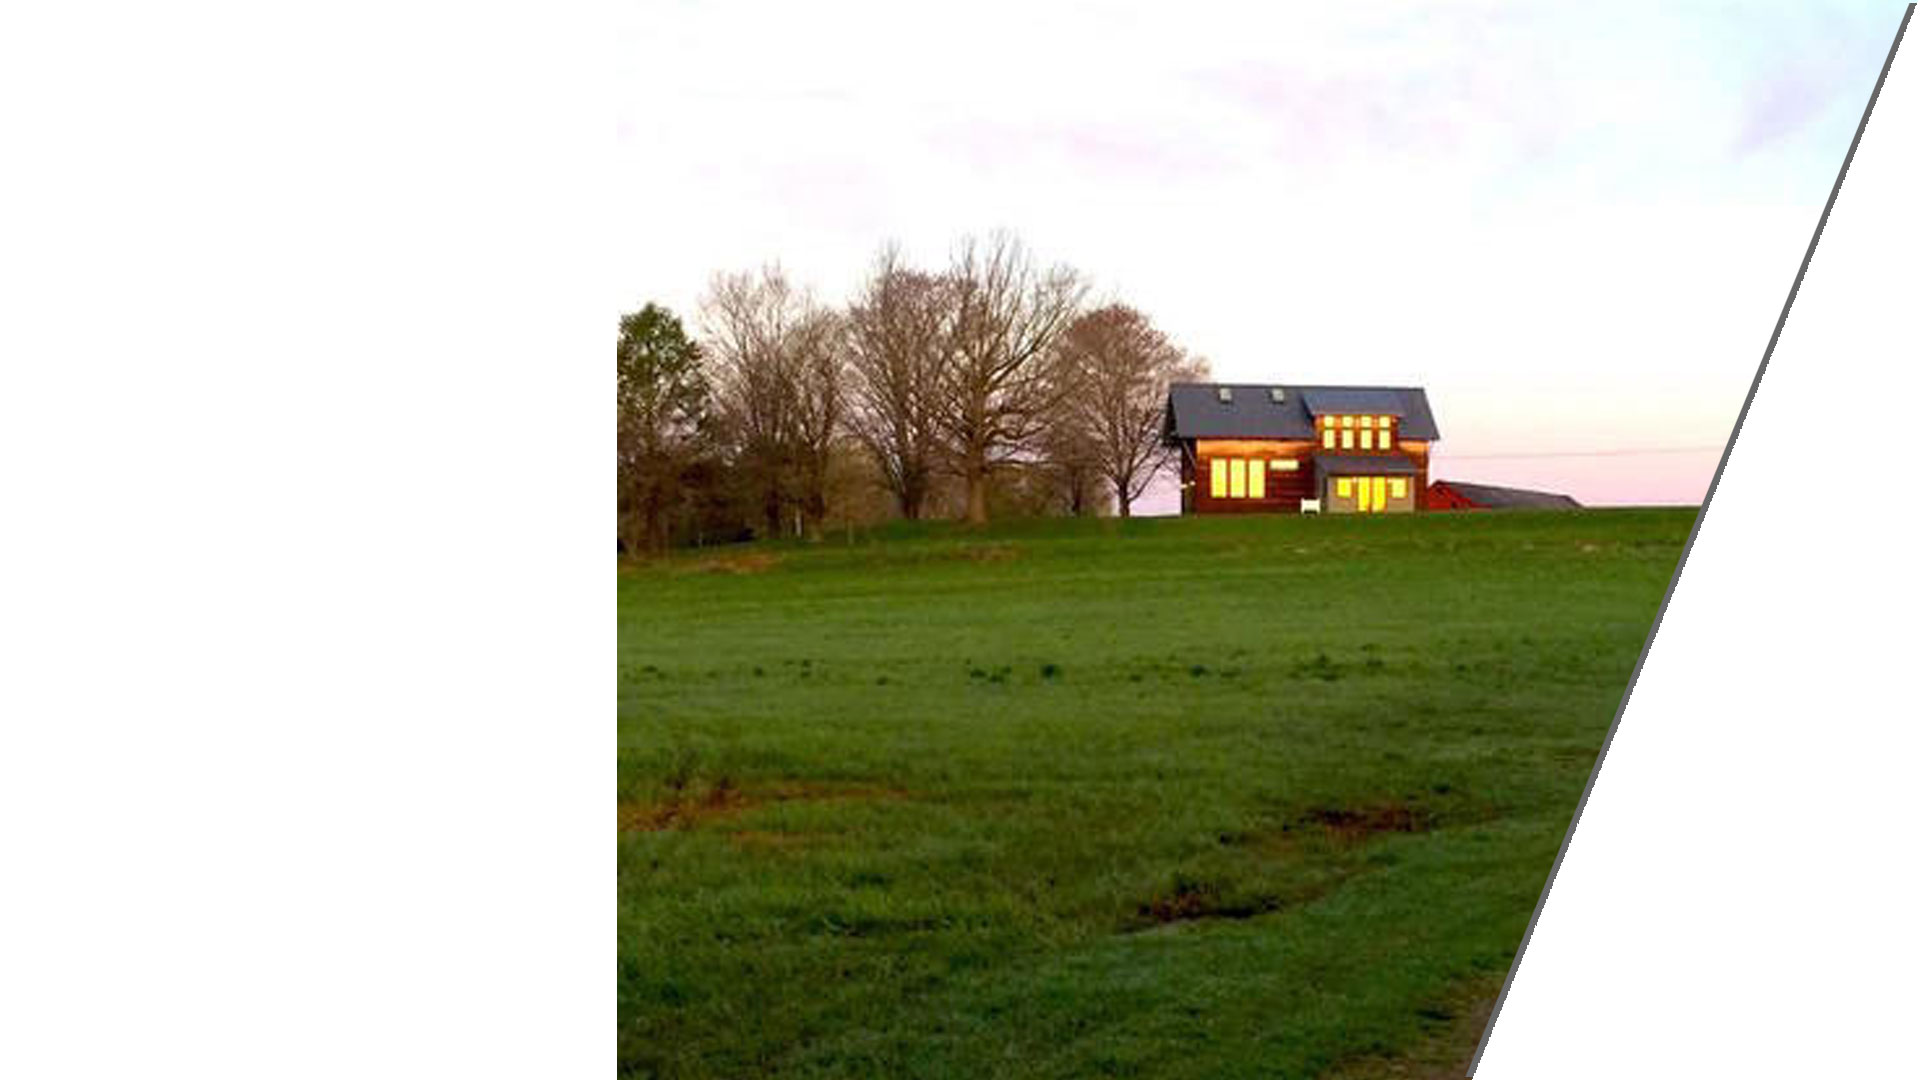 S - PROJECT NAME Suffield Academy Balance BarnARCHITECT Dylan HendersonDESIGNER Robin Rhodes MillerPHOTOGRAPHER Tobye Cook